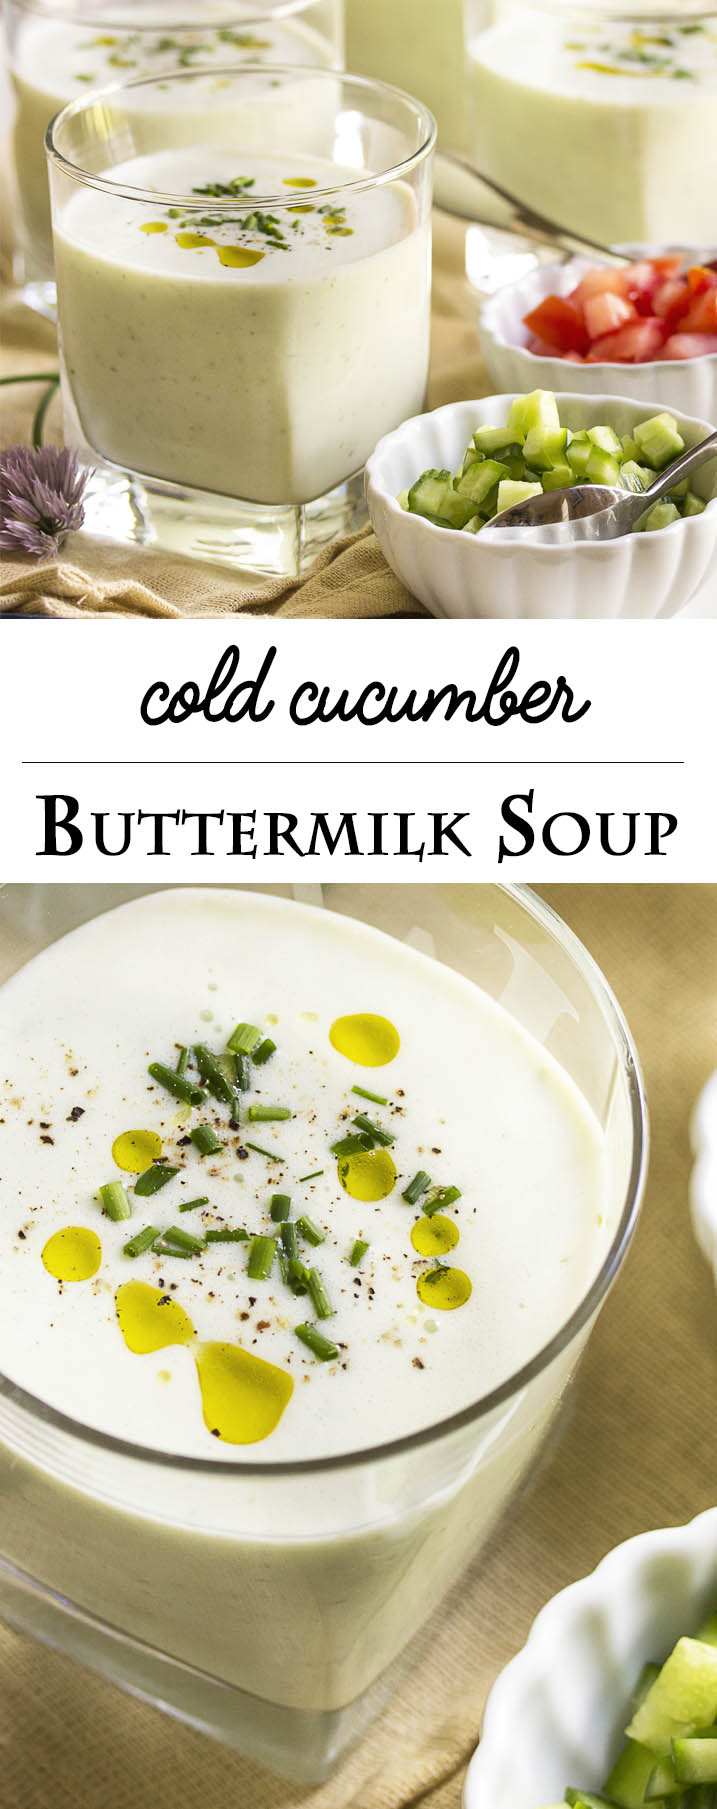 Cold Cucumber Buttermilk Soup - Cucumber blended with buttermilk makes a refreshing, cold soup on a hot, summer day. It takes only moments to prepare and, as a bonus, it's a great way to use up extra buttermilk. | justalittlebitofbacon.com